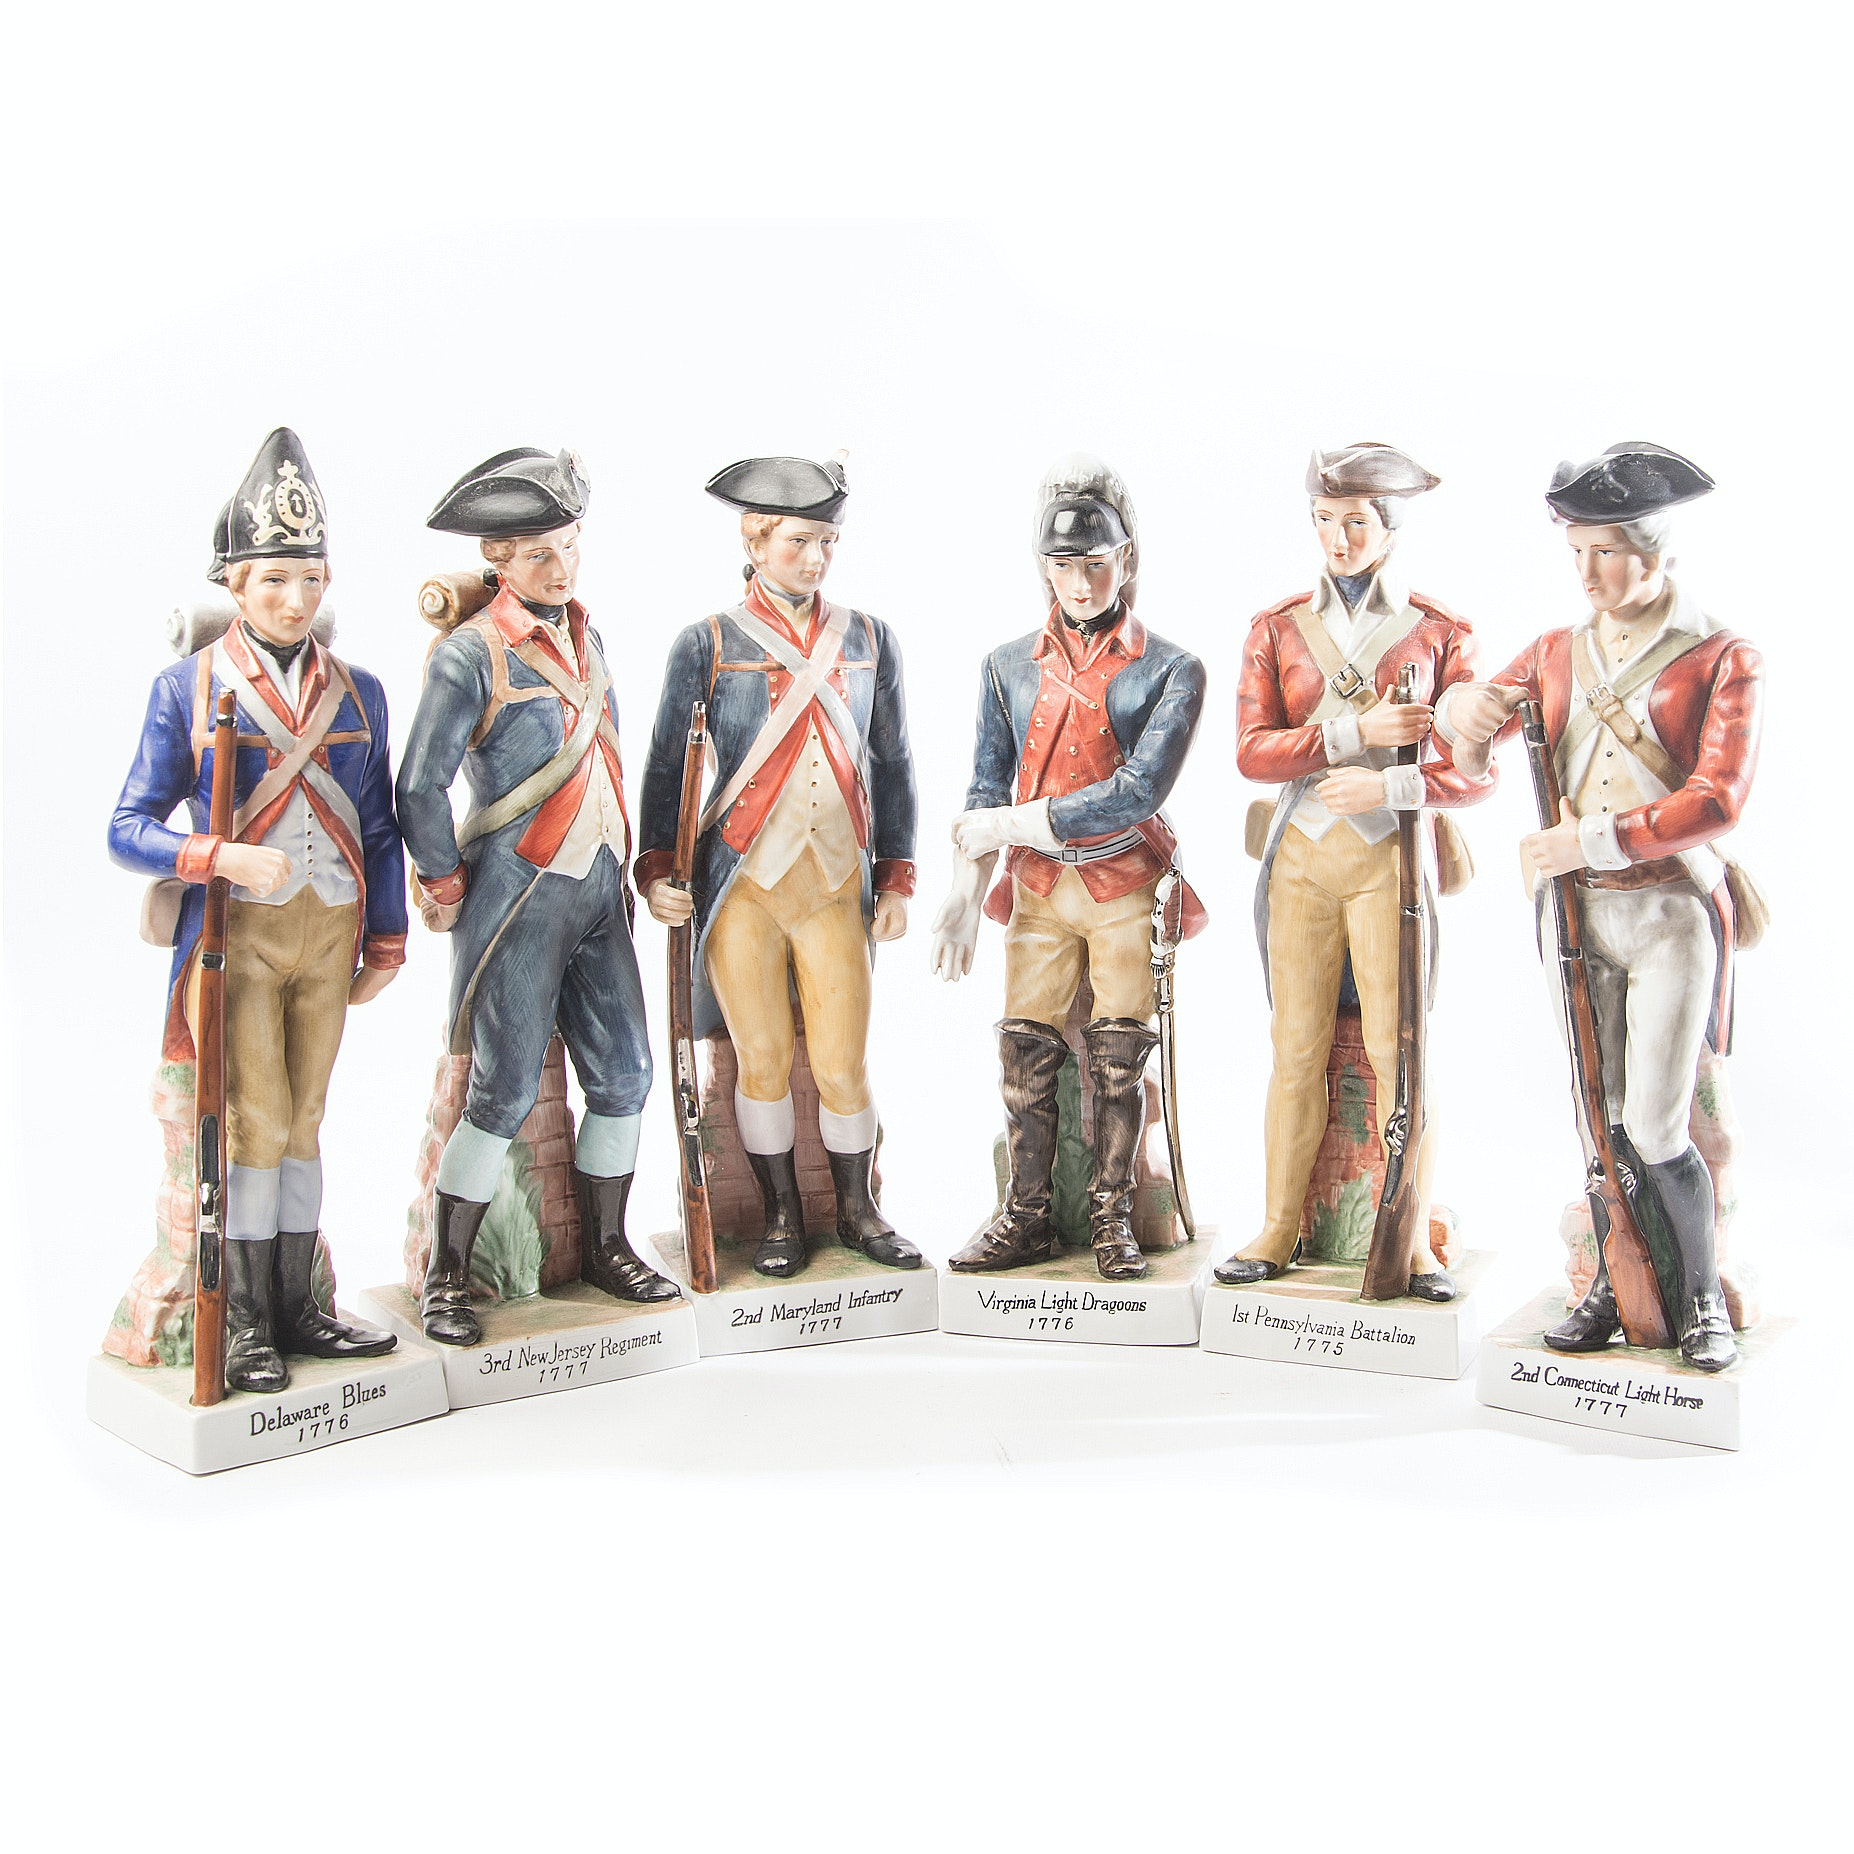 Porcelain Andrea by Sadek Revolutionary War Soldier Figurines